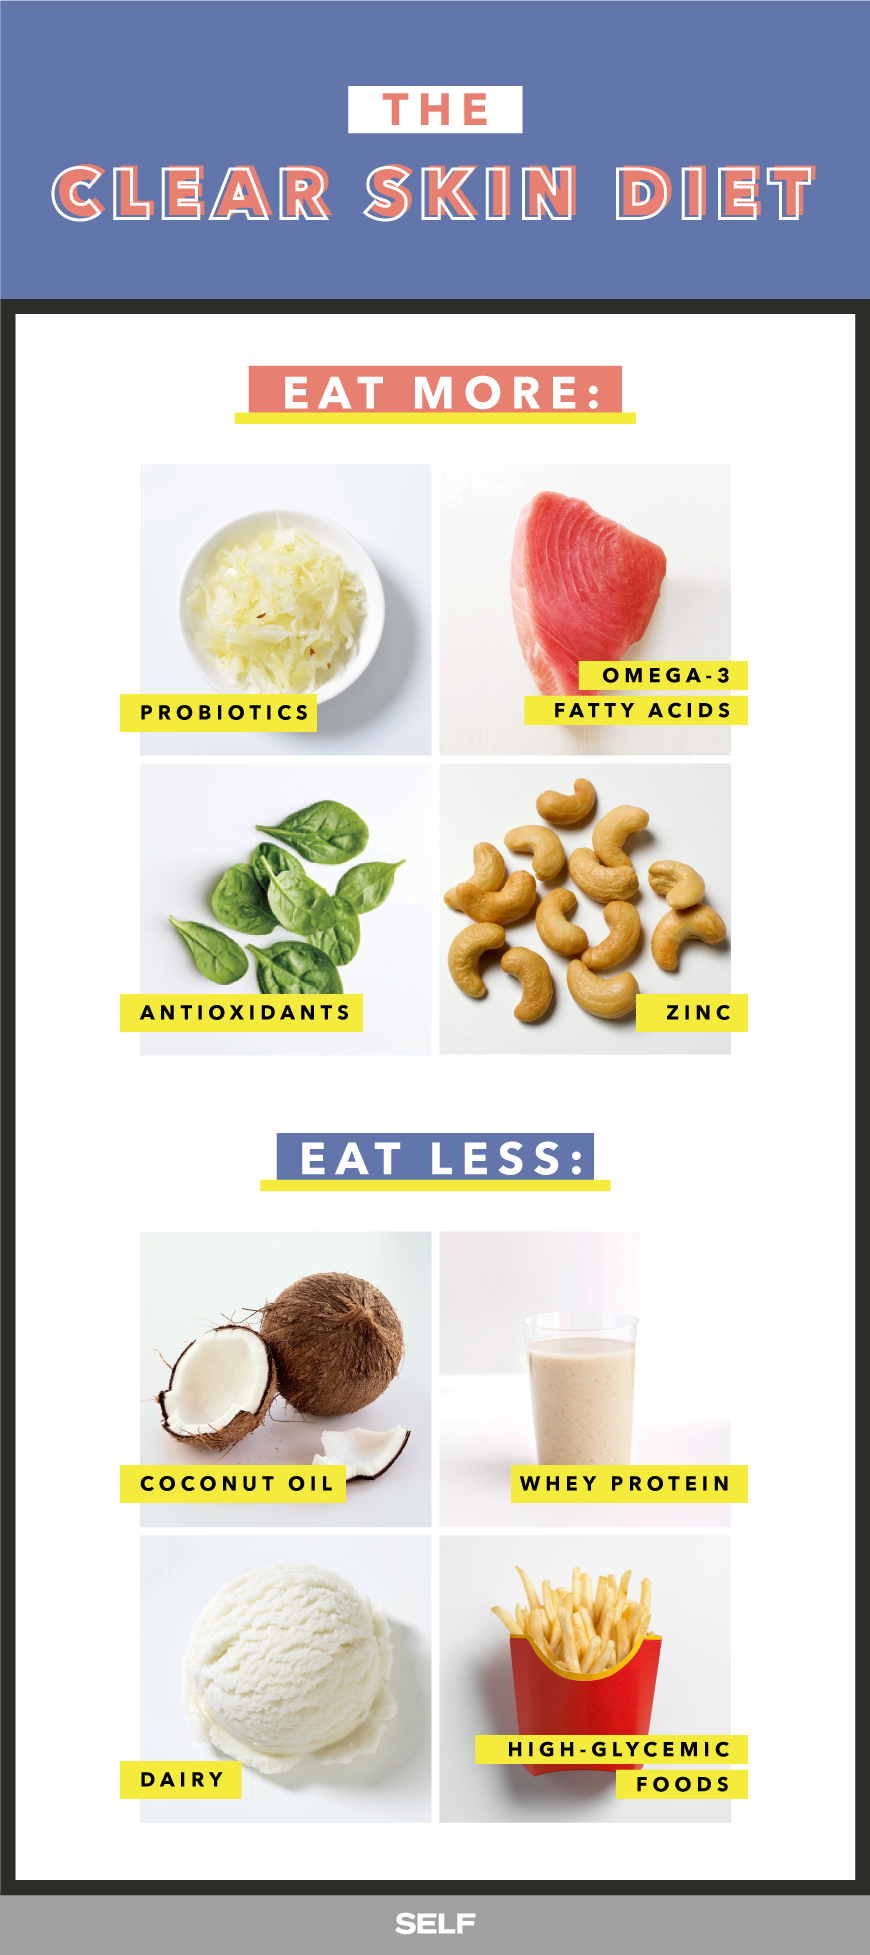 Can Your Diet Help You Get Rid of Acne?